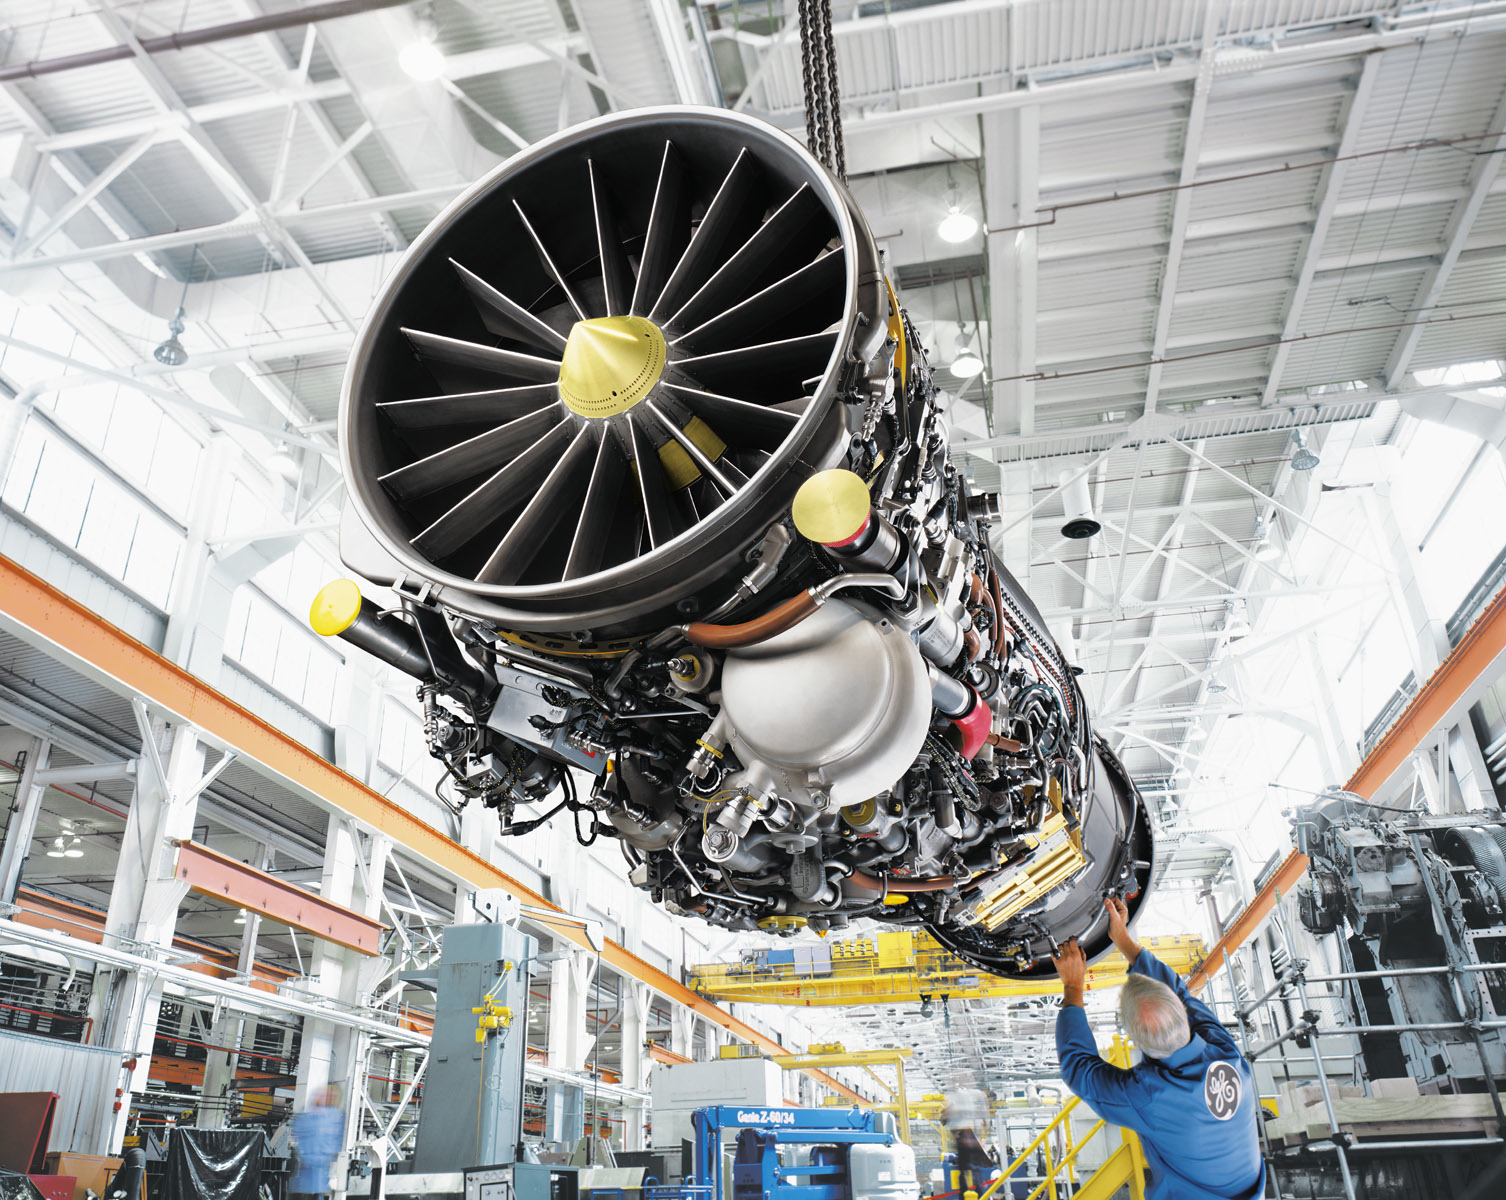 drone aircraft engines with Ges F414 Engine Surpasses 1500 Deliveries And 3 Million Flight Hours on Ion Turret Class Sb1 besides Multirotor Or Fixed Wing in addition Page 58 likewise Ges F414 Engine Surpasses 1500 Deliveries And 3 Million Flight Hours in addition The Imperial Marines.